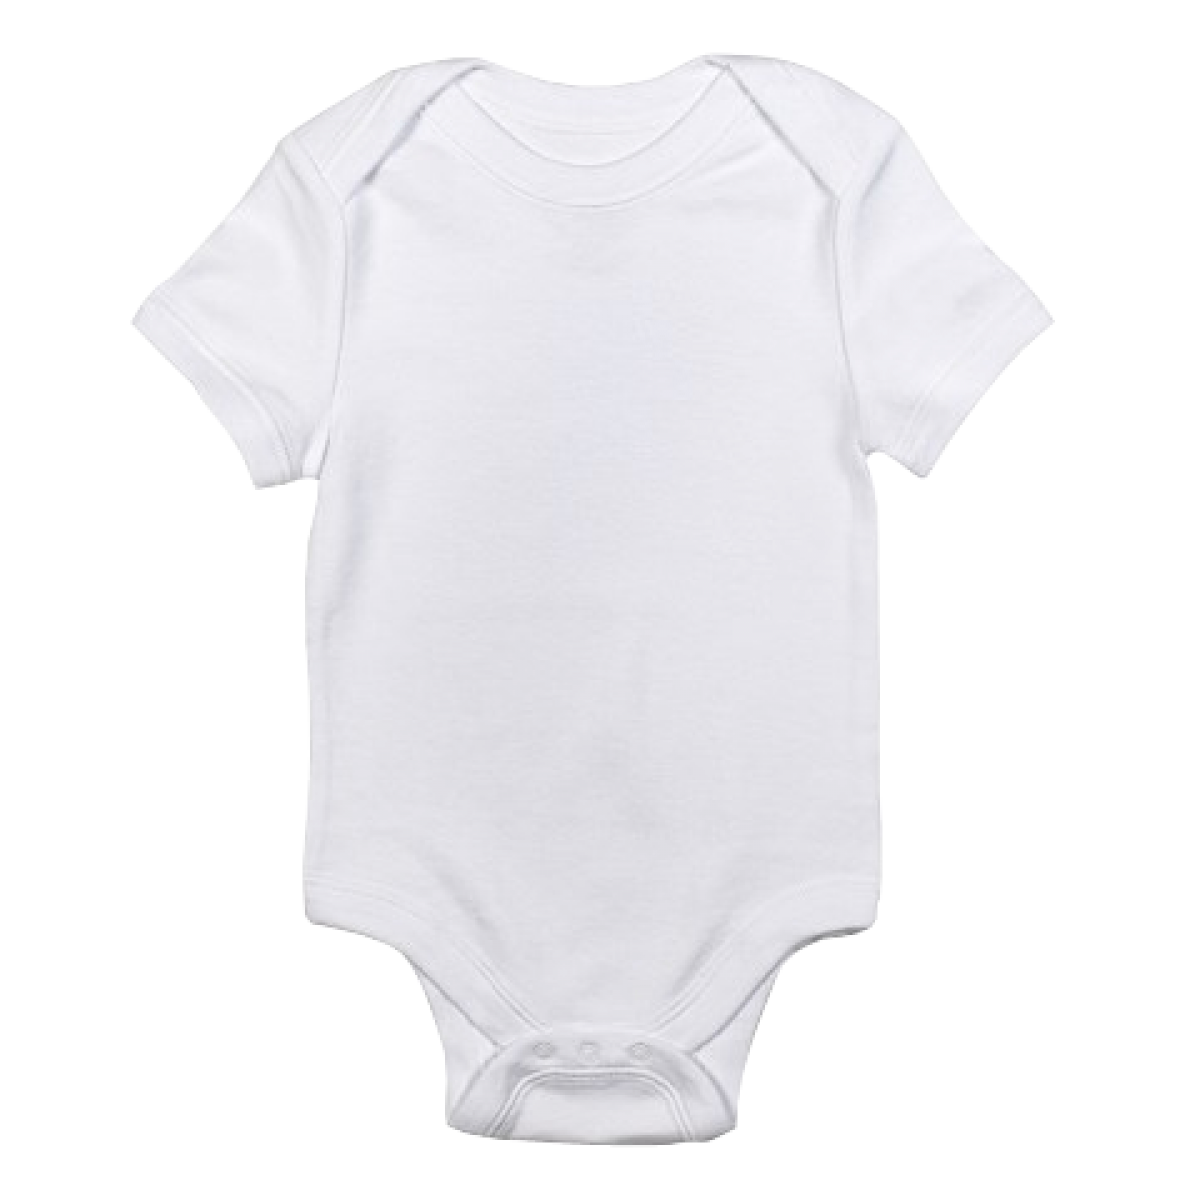 Browse baby onesie pictures, photos, images, GIFs, and videos on Photobucket.